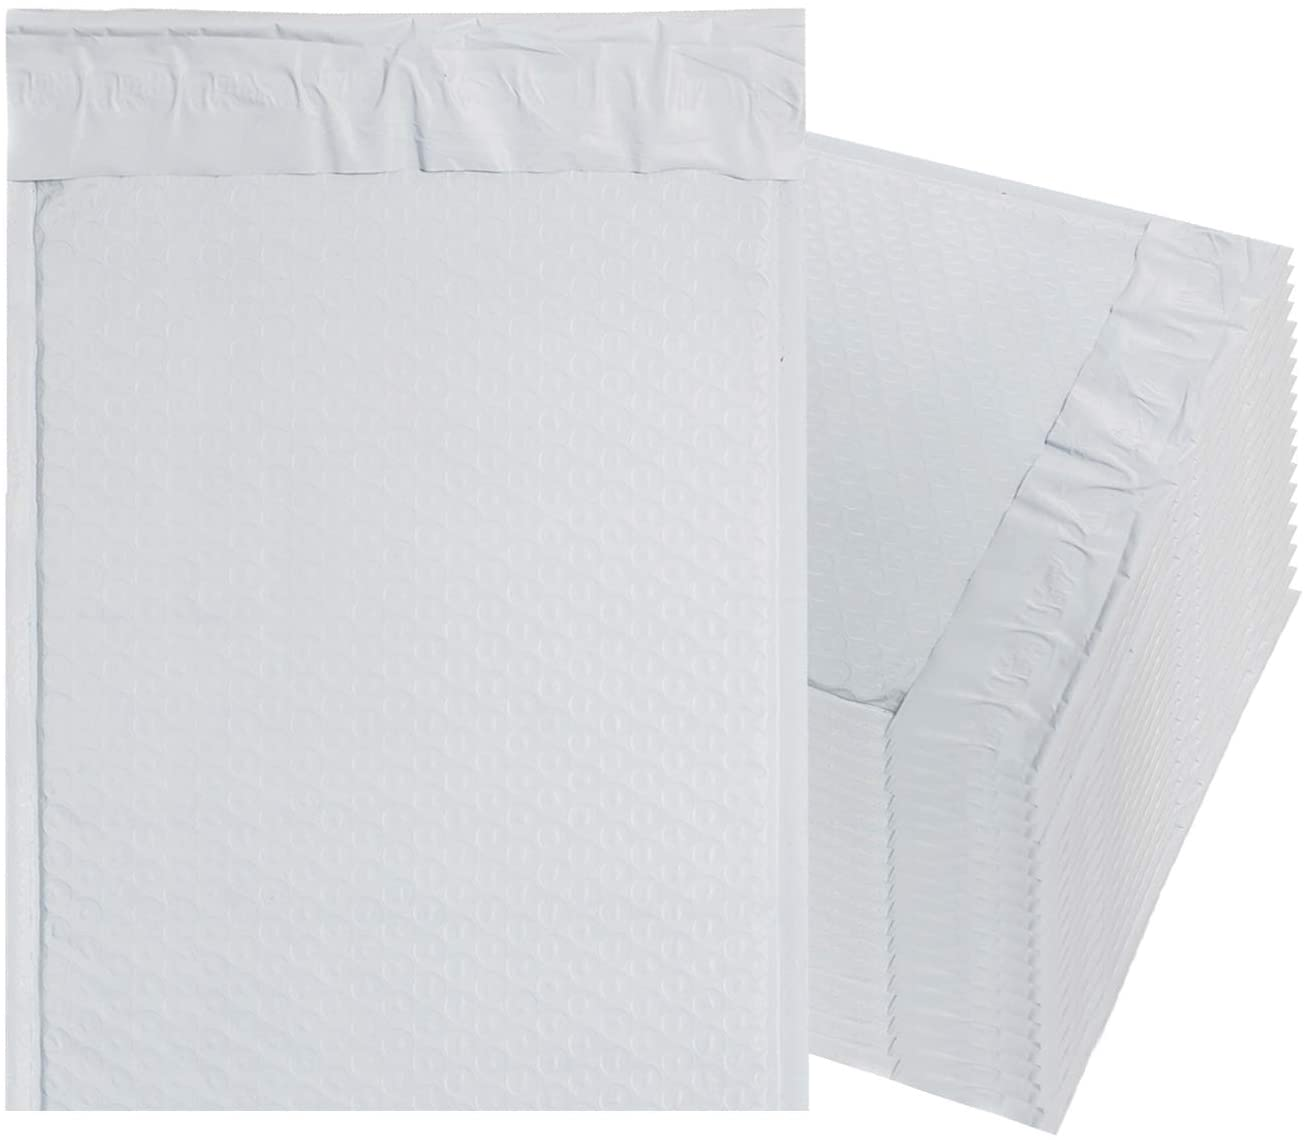 White Poly Bubble mailers 8.5 x 11 Padded envelopes 8 1/2 x 11 by Amiff. Pack of 20 Poly Cushion envelopes. Exterior Size 9.5 x 11. Peel and Seal.